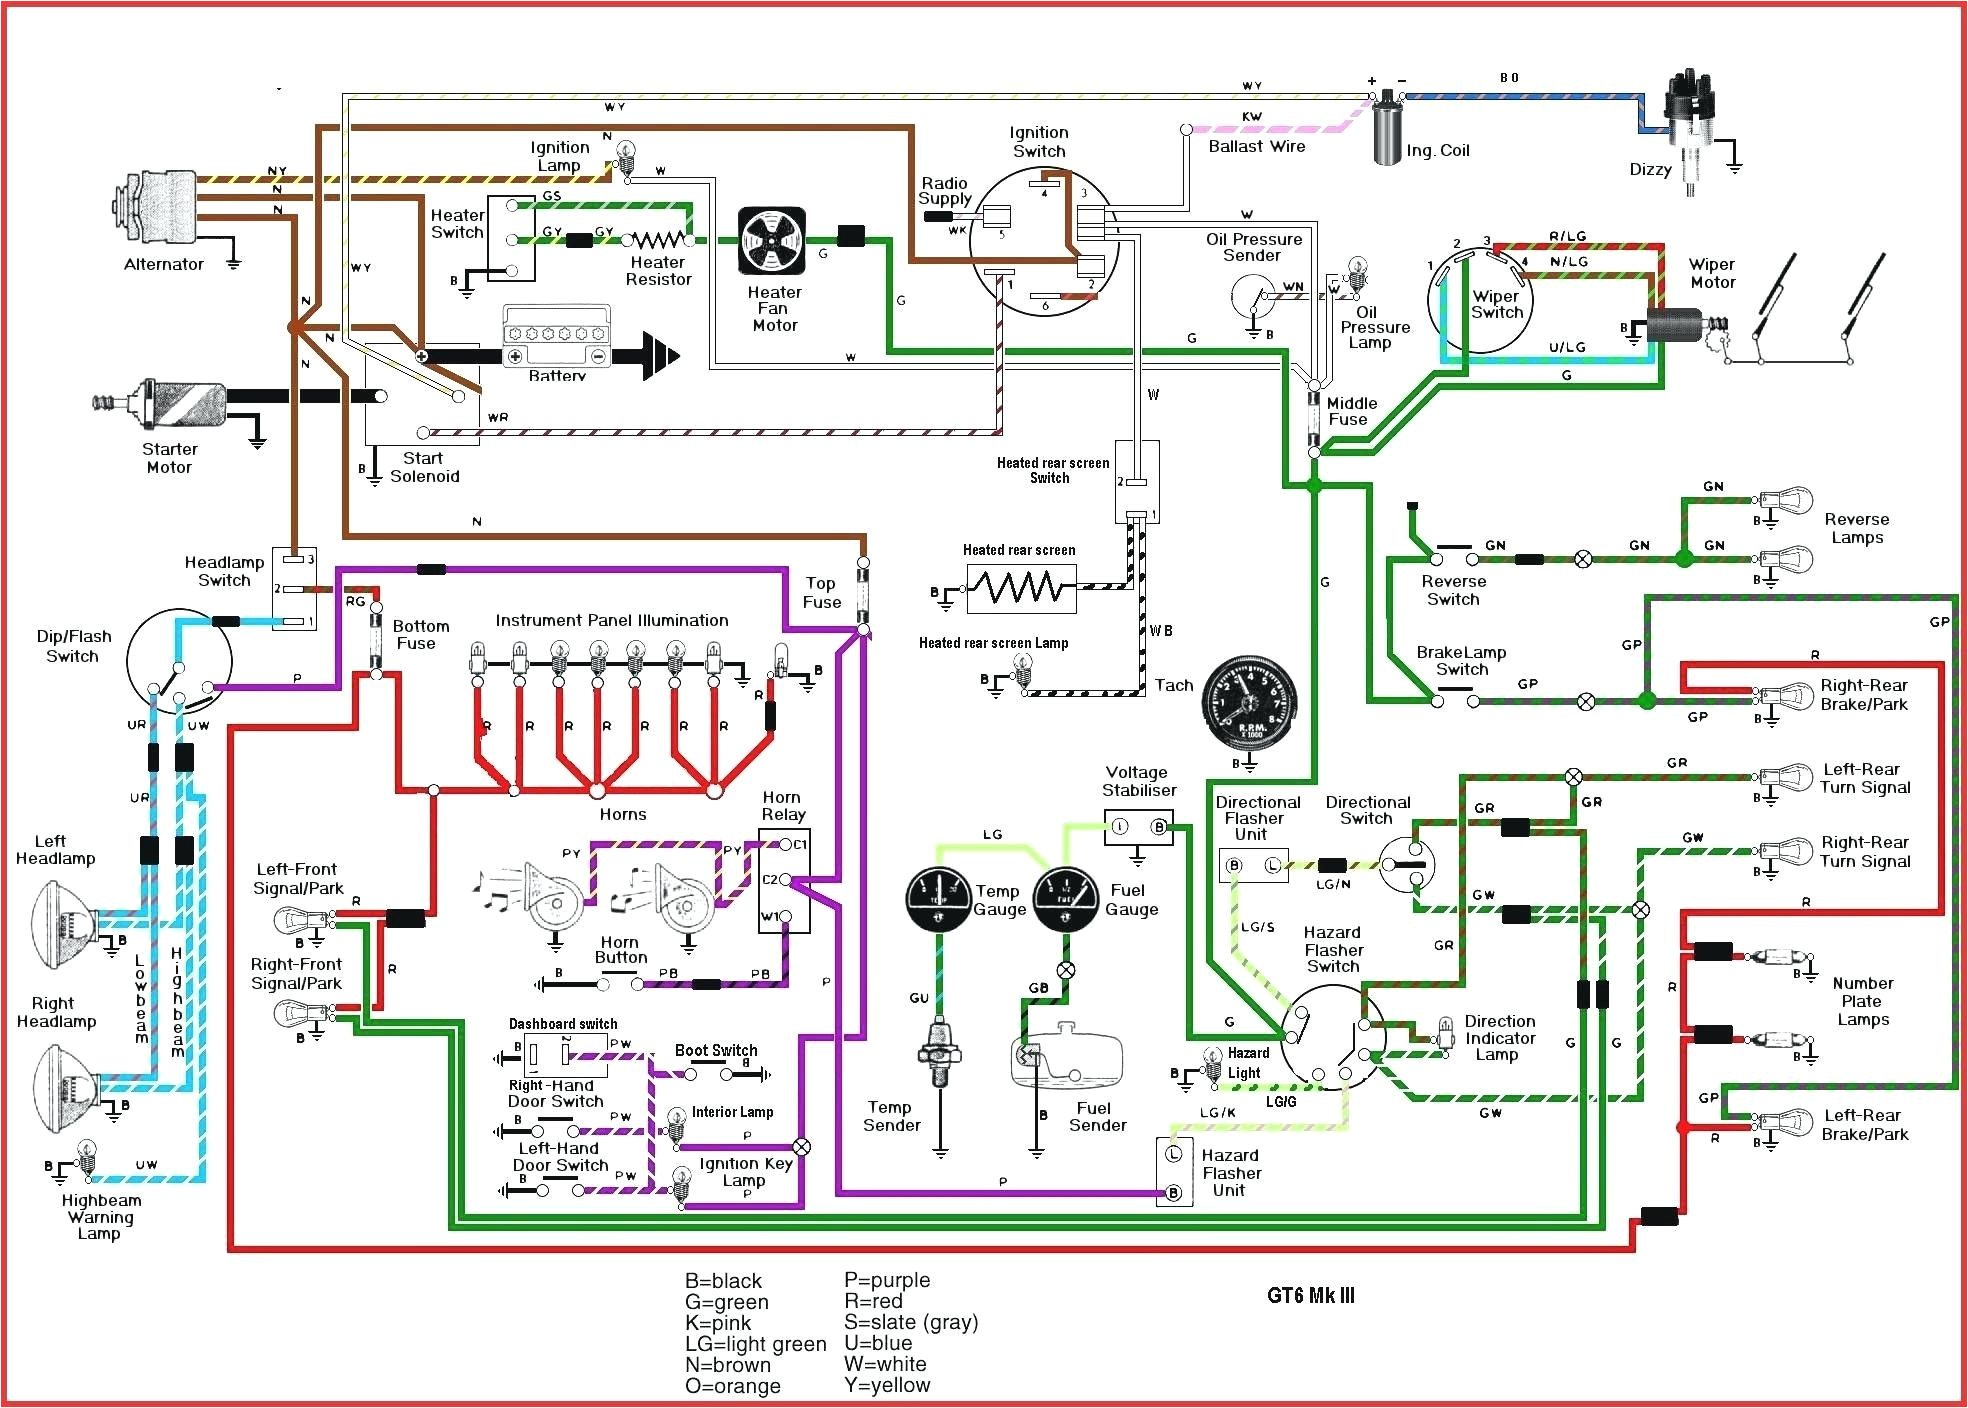 remarkable basicouse wiring diagram free diagrams ultra modern light switches outlets for switch from gfi to go jpg